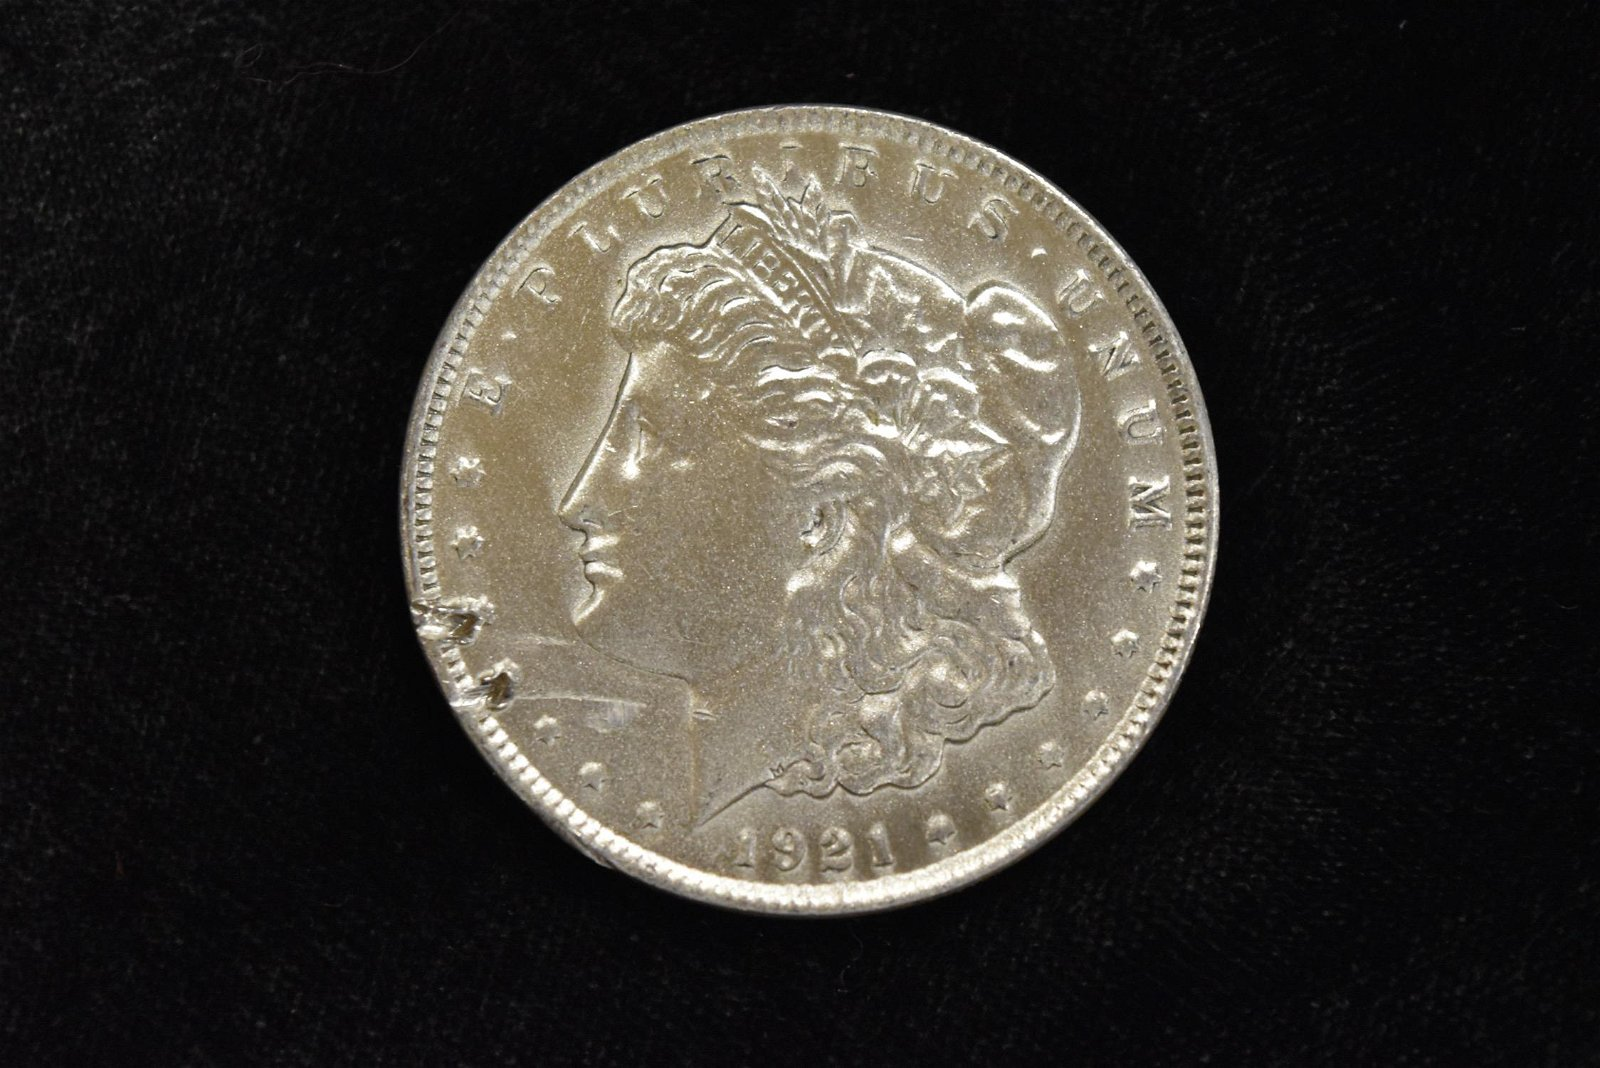 1921, Silver Dollar, Grade by Picture